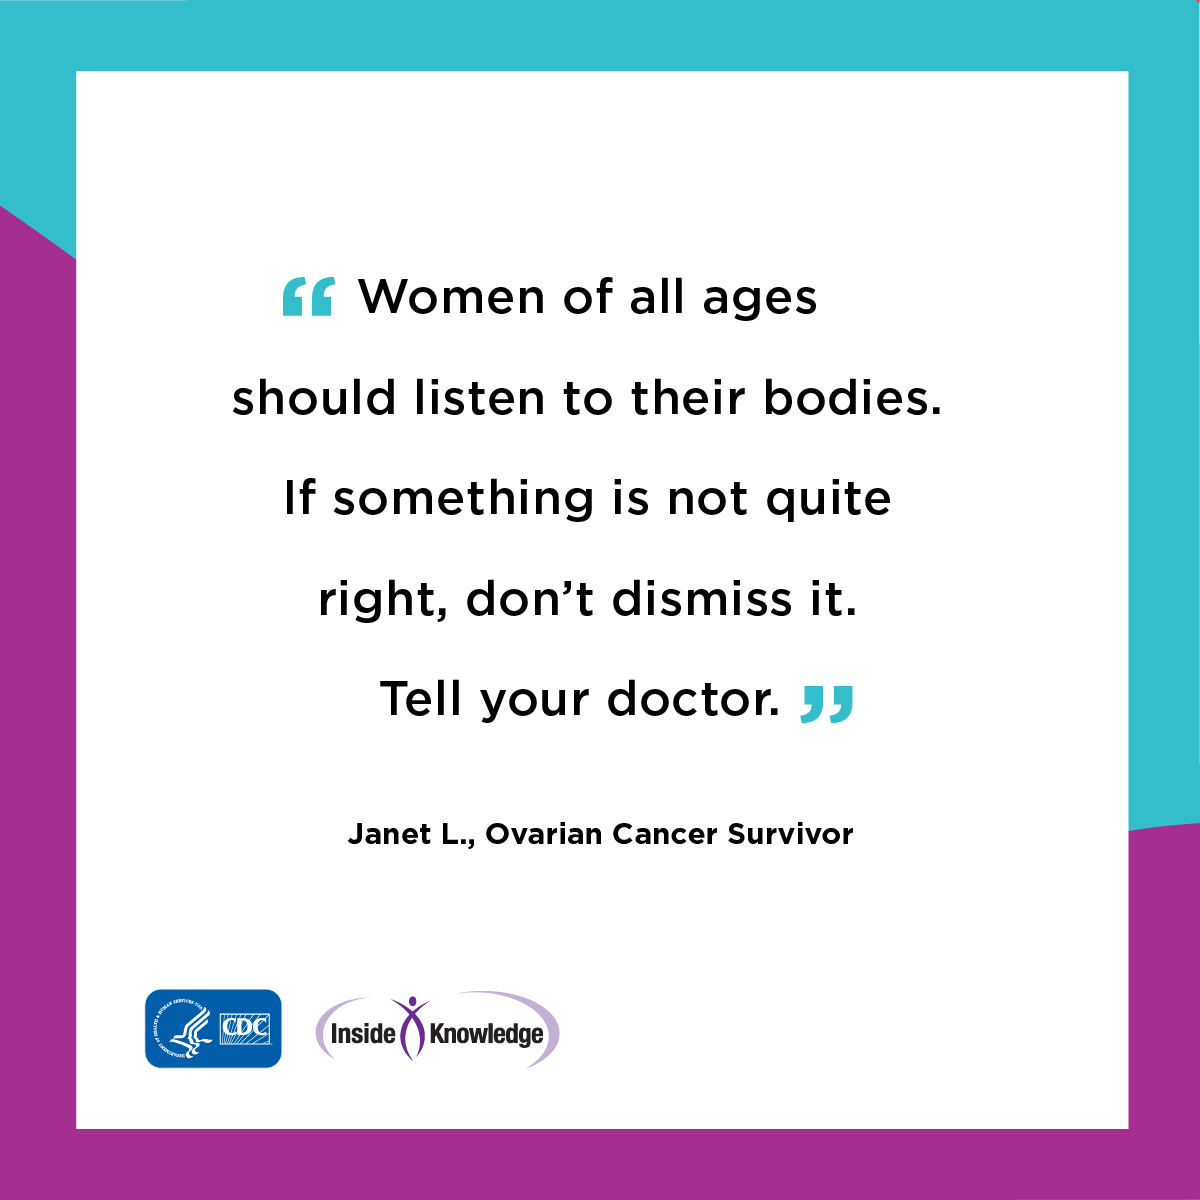 Women of all ages is to listen to your body. If something is not quite right, don't dismiss it. Tell your doctor. Janet L., Ovarian Cancer Survivor